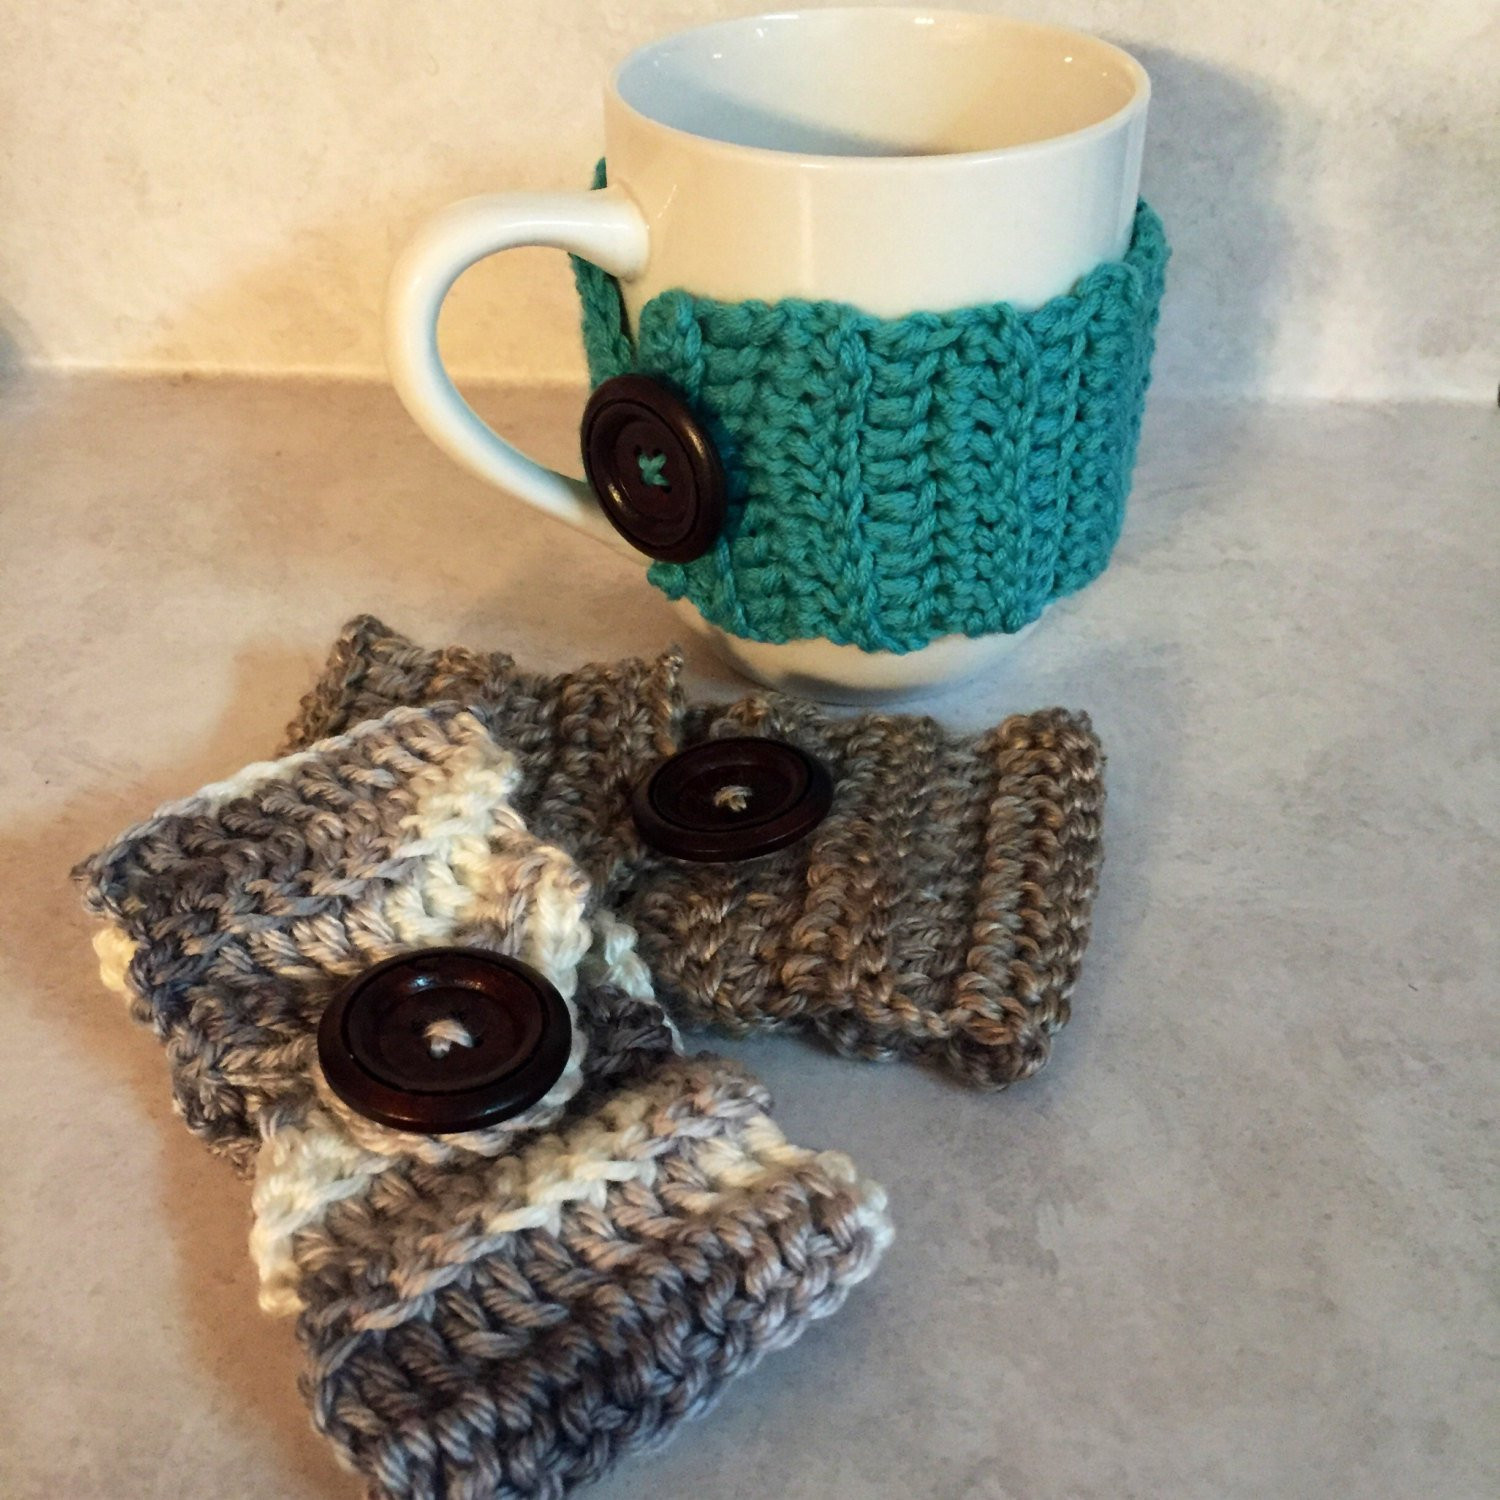 Crochet Coffee Cup Cozy New Crochet Tea Cozy Coffee Cup Sleeve Coffee Sleeve Mug Cozy Of Crochet Coffee Cup Cozy Fresh Creativity Awaits Crochet Coffee Cozy Patterns Stitch